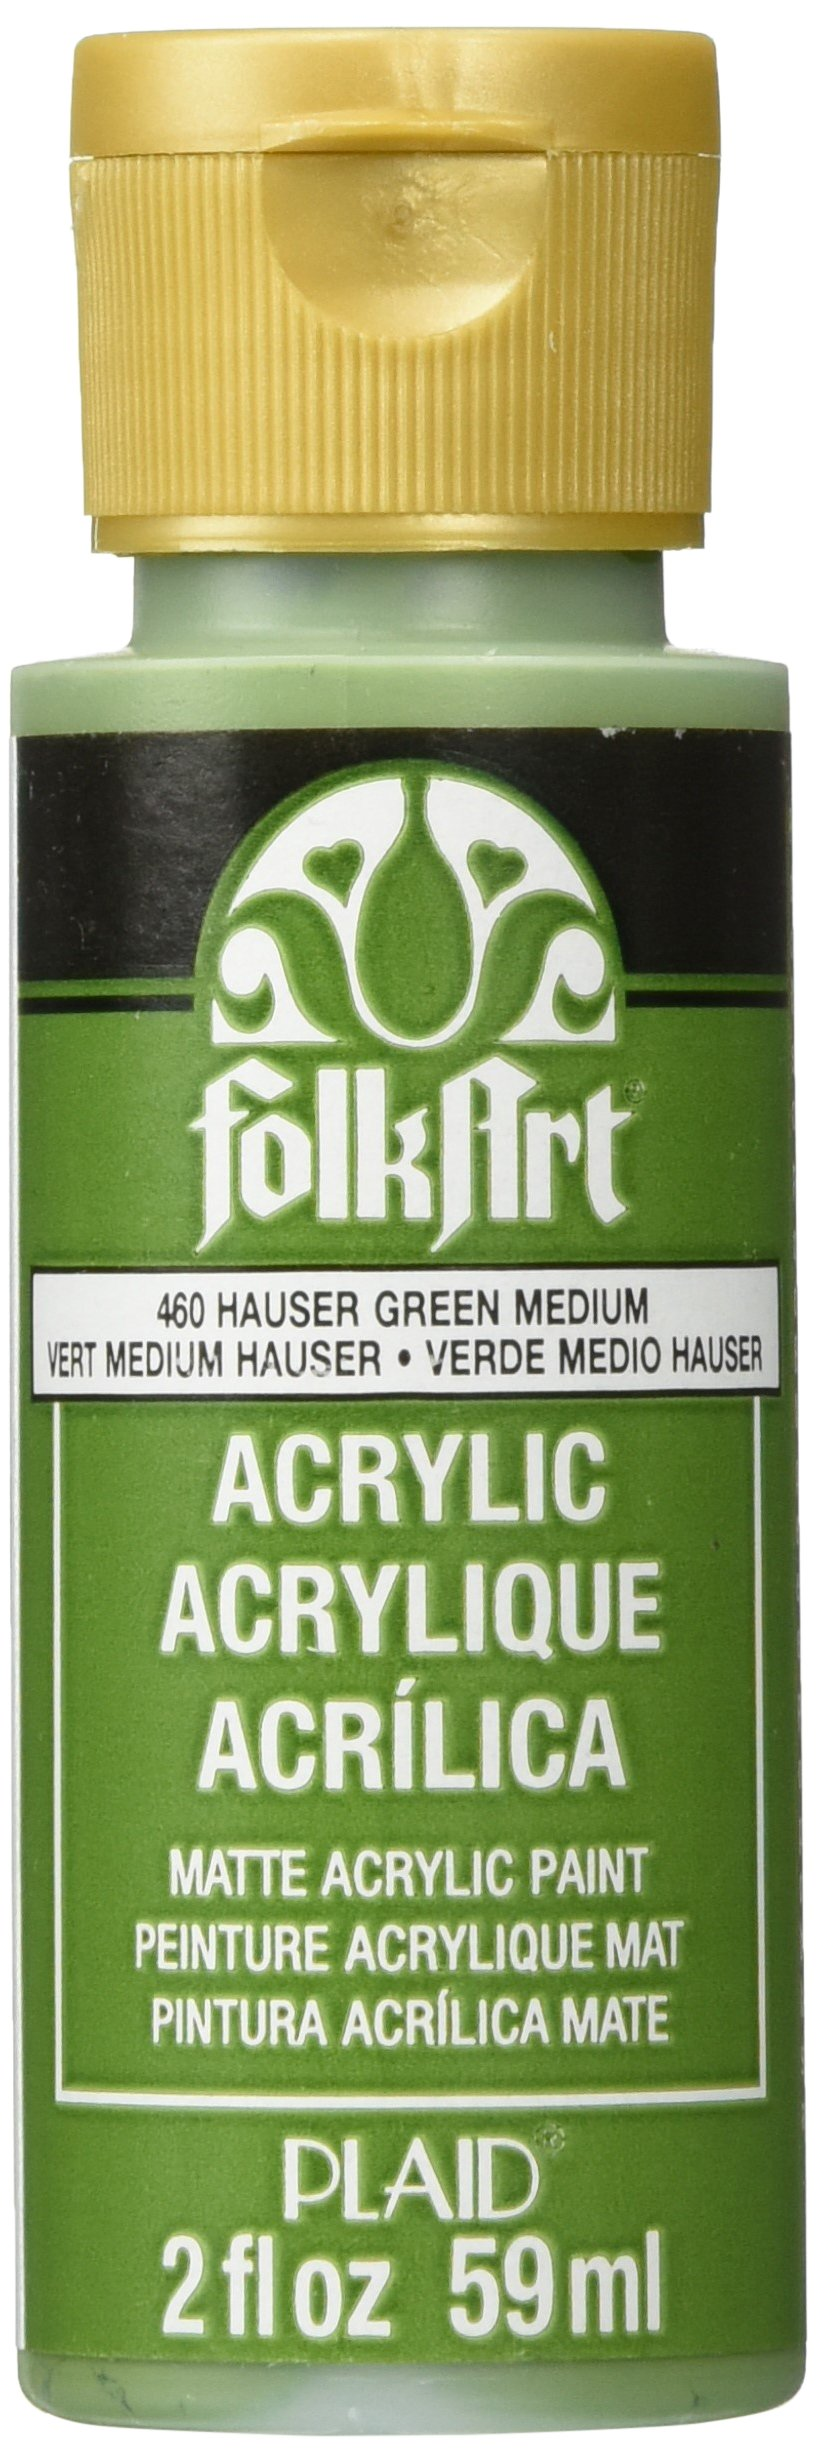 FolkArt Acrylic Paint in Assorted Colors (2 oz), 460, Hauser Green Med